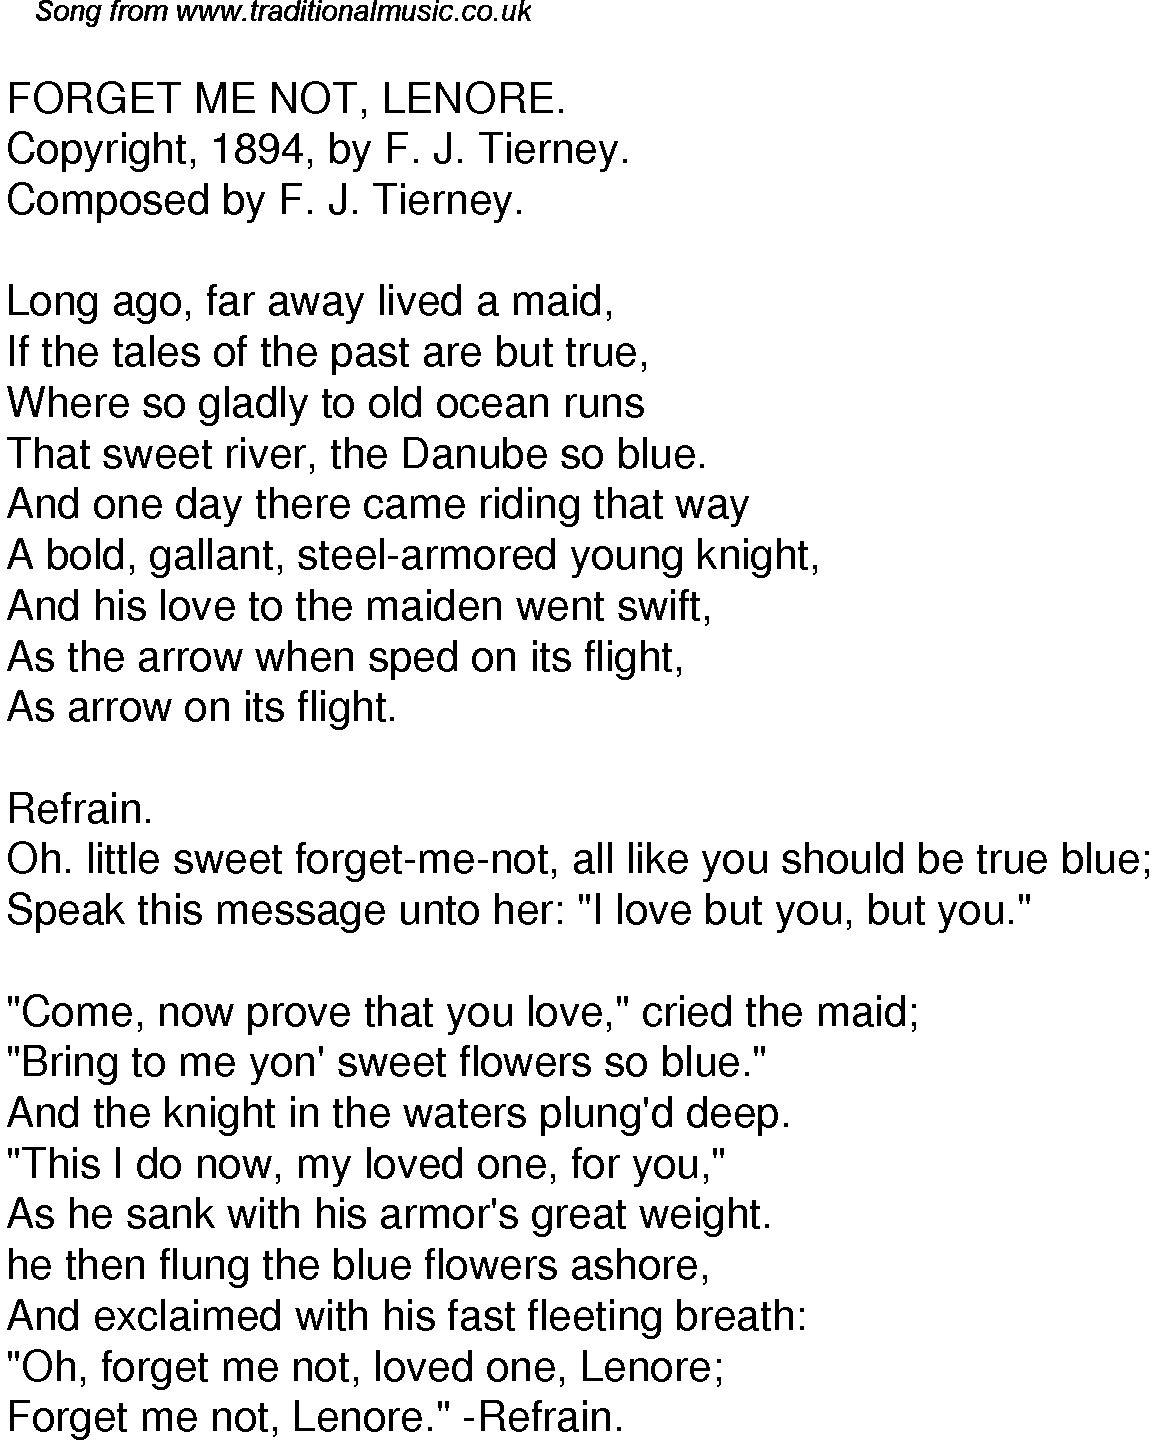 Old Time Song Lyrics For 48 Forget Me Not Lenore